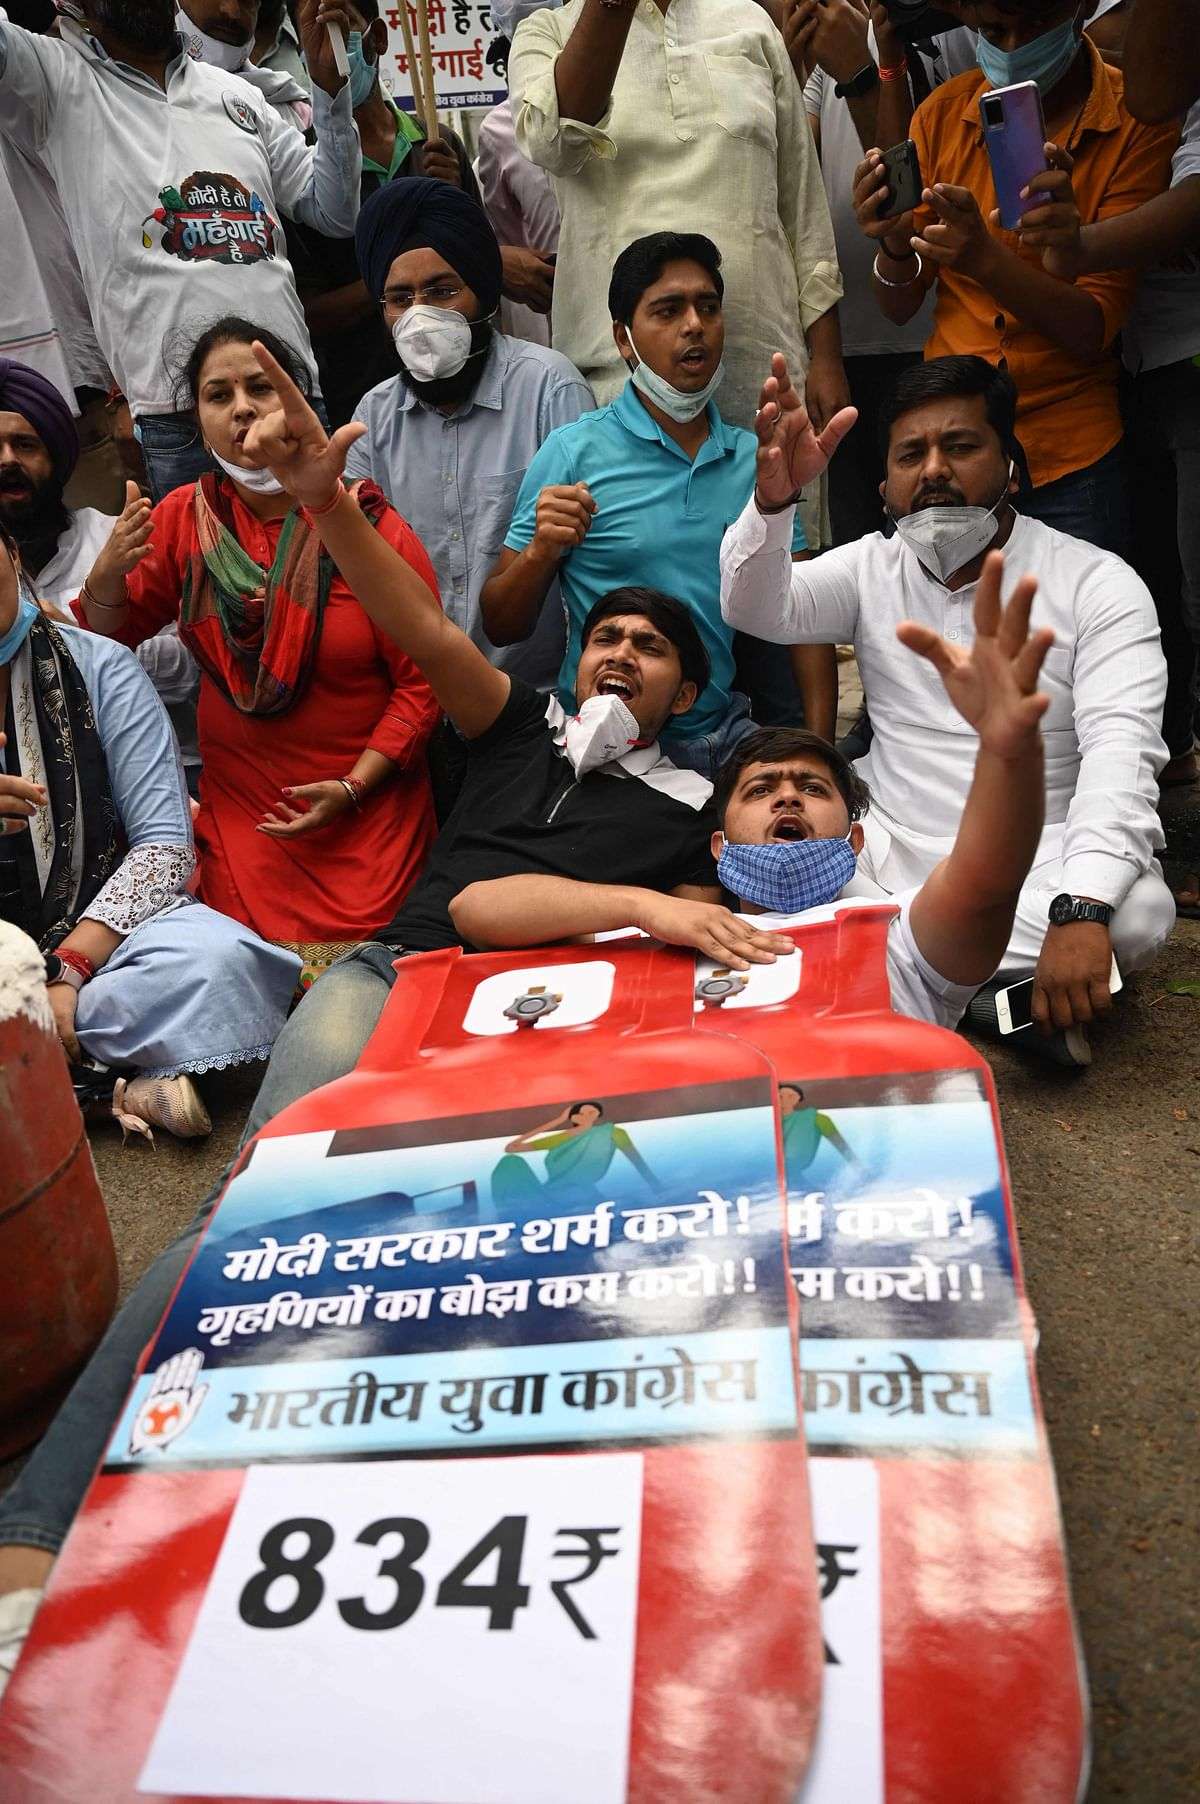 Activists of the Indian Youth Congress (IYC) party hold a large Liquefied Petroleum Gas (LPG) cylinder cutout while shouting slogans during a protest against the recent price hike of fuel and LPG, outside the ministry of petroleum and natural gas in New Delhi on July 3, 2021.